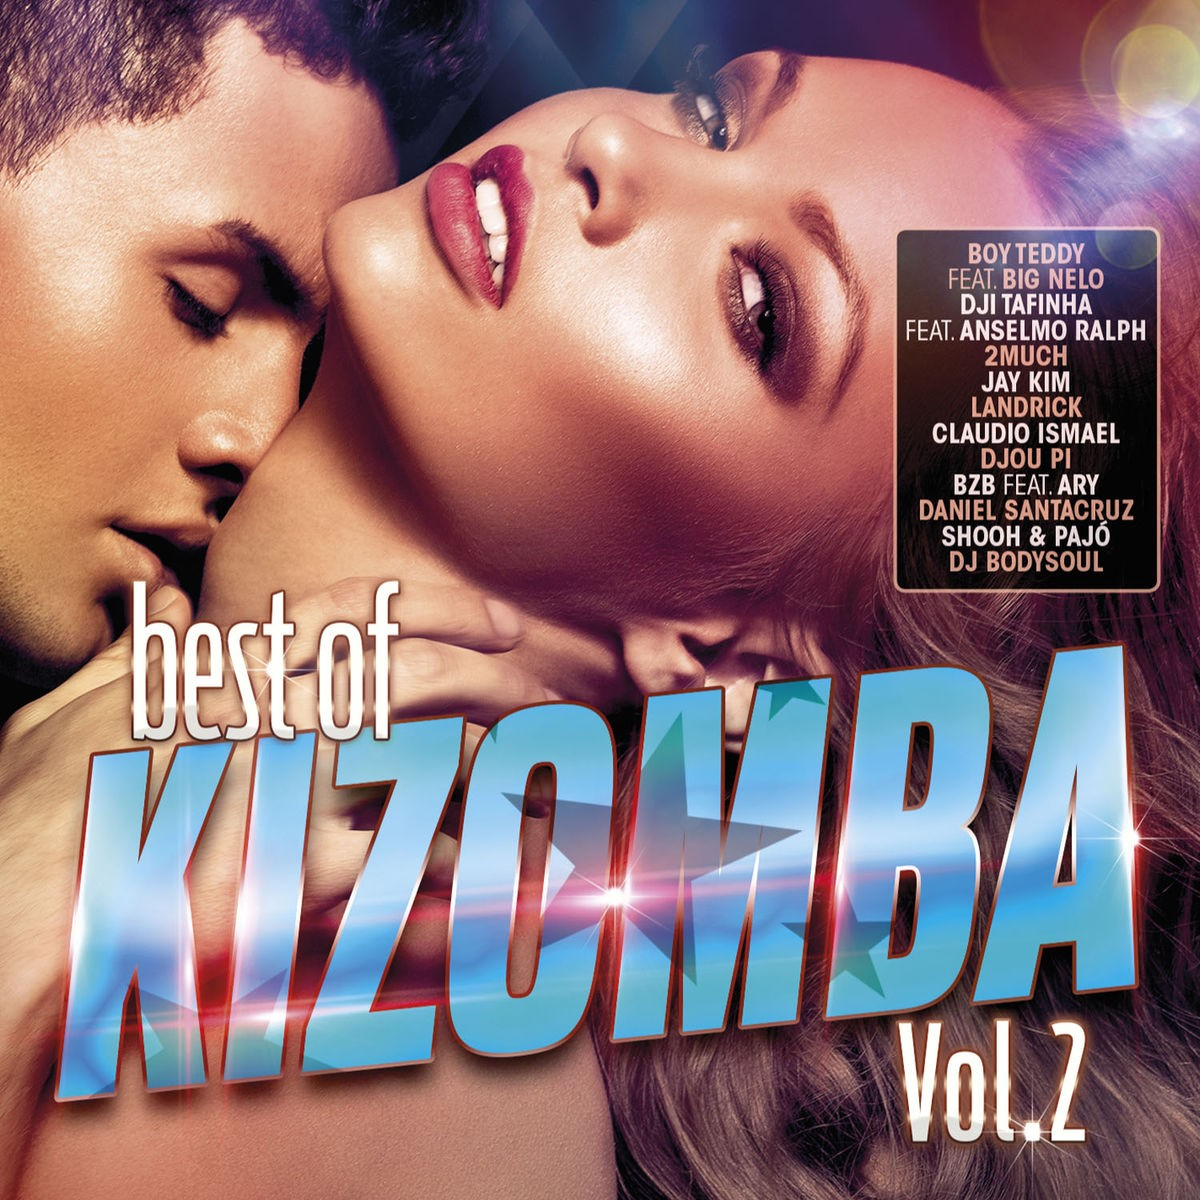 Best Of Kizomba Vol.2 CD - 11.80.9729